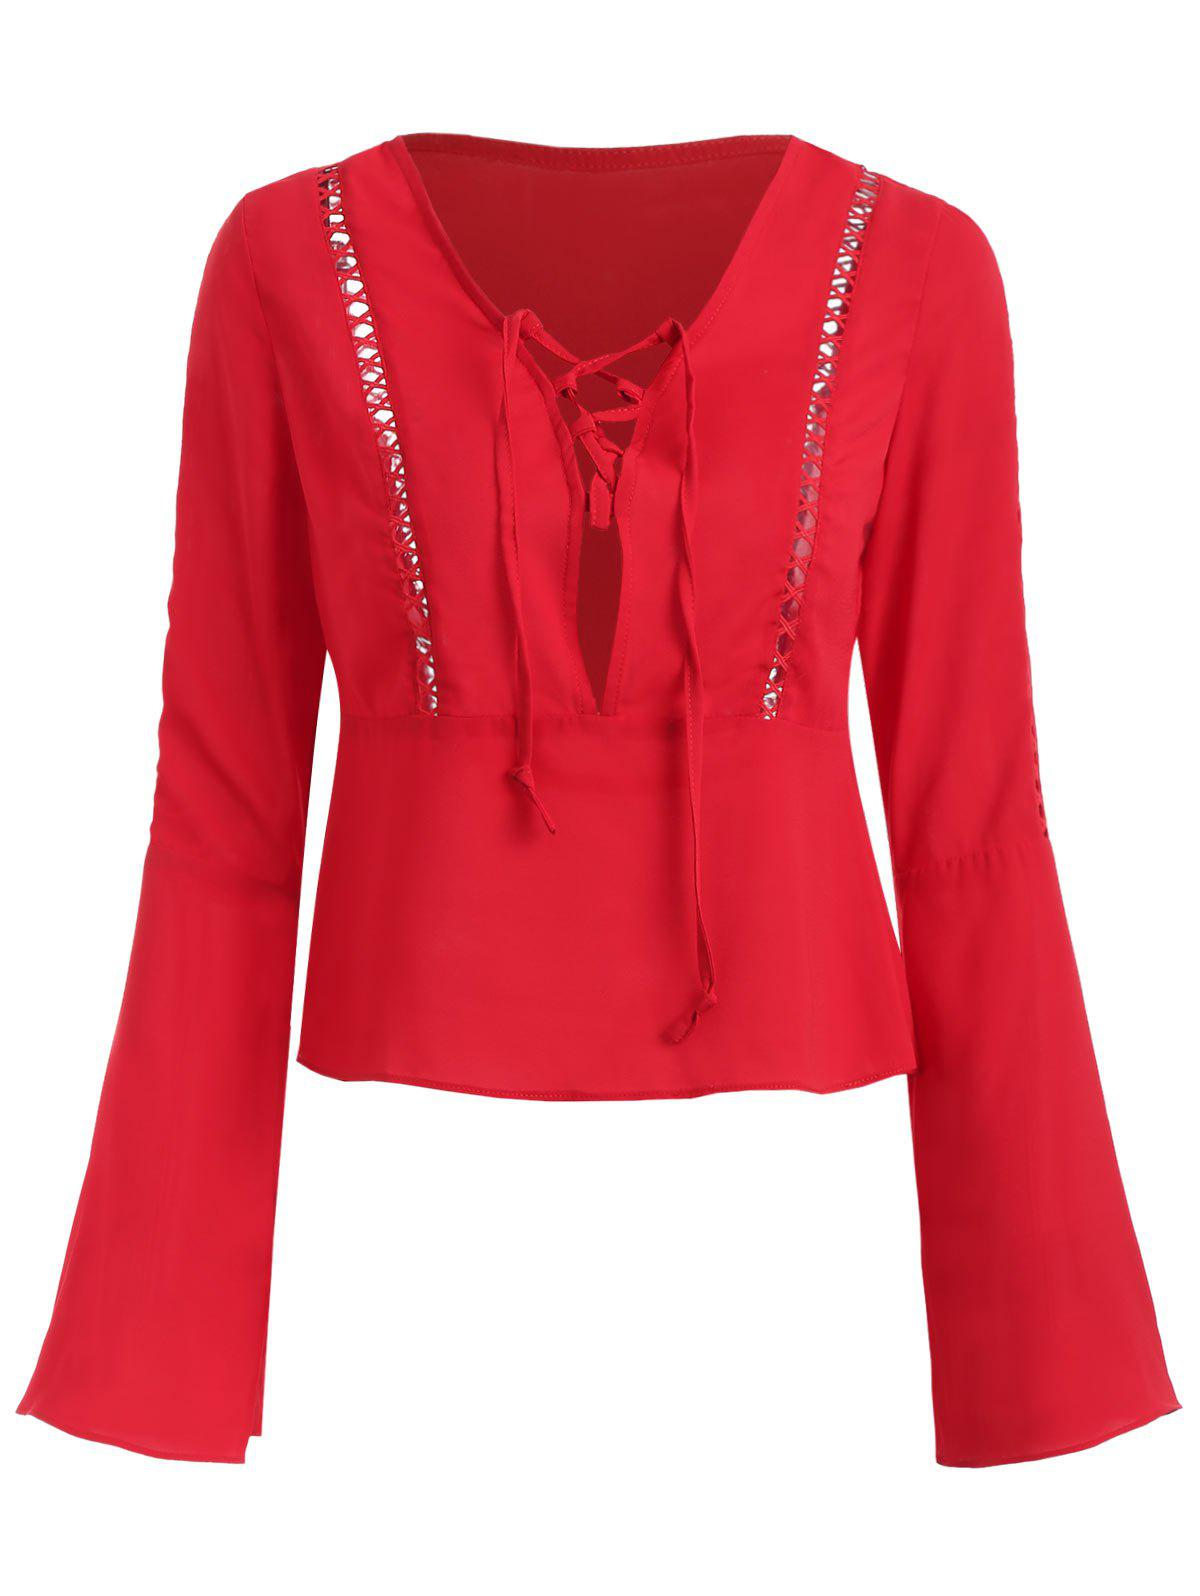 Hollow Out Flare Sleeve Plunging Neckline Blouse - RED XL